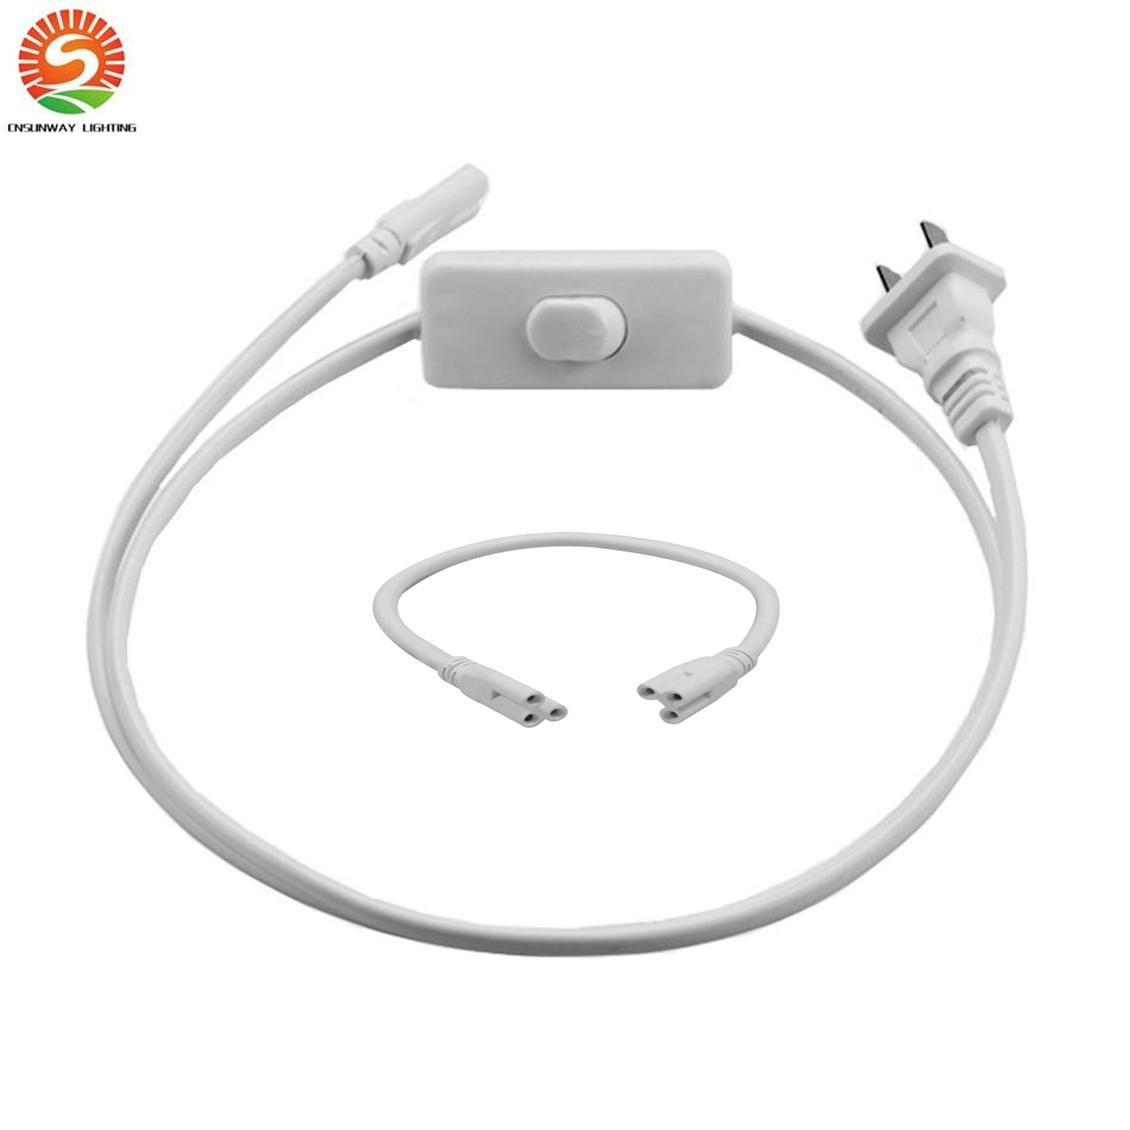 2019 Led Extension Cord Lamp Connecting Wire Double End Wiring A Light Fixture To Connector Cable For T5 T8 Integrated Tube Switch From